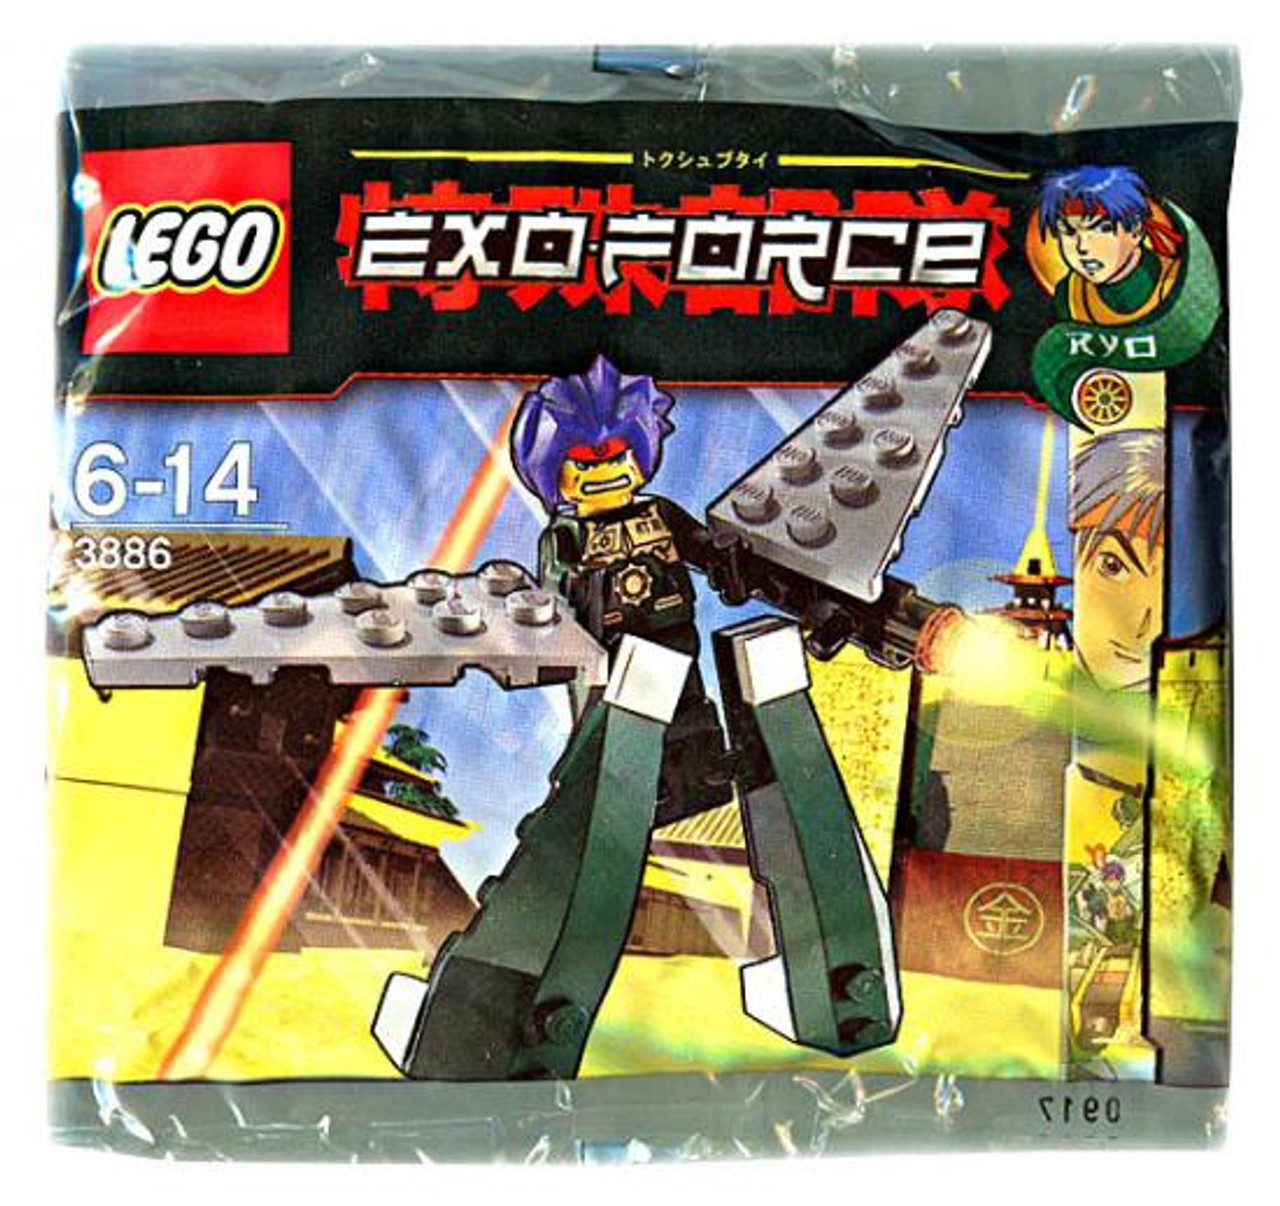 LEGO Exo Force Green Exo Fighter Mini Set #3886 [Bagged]